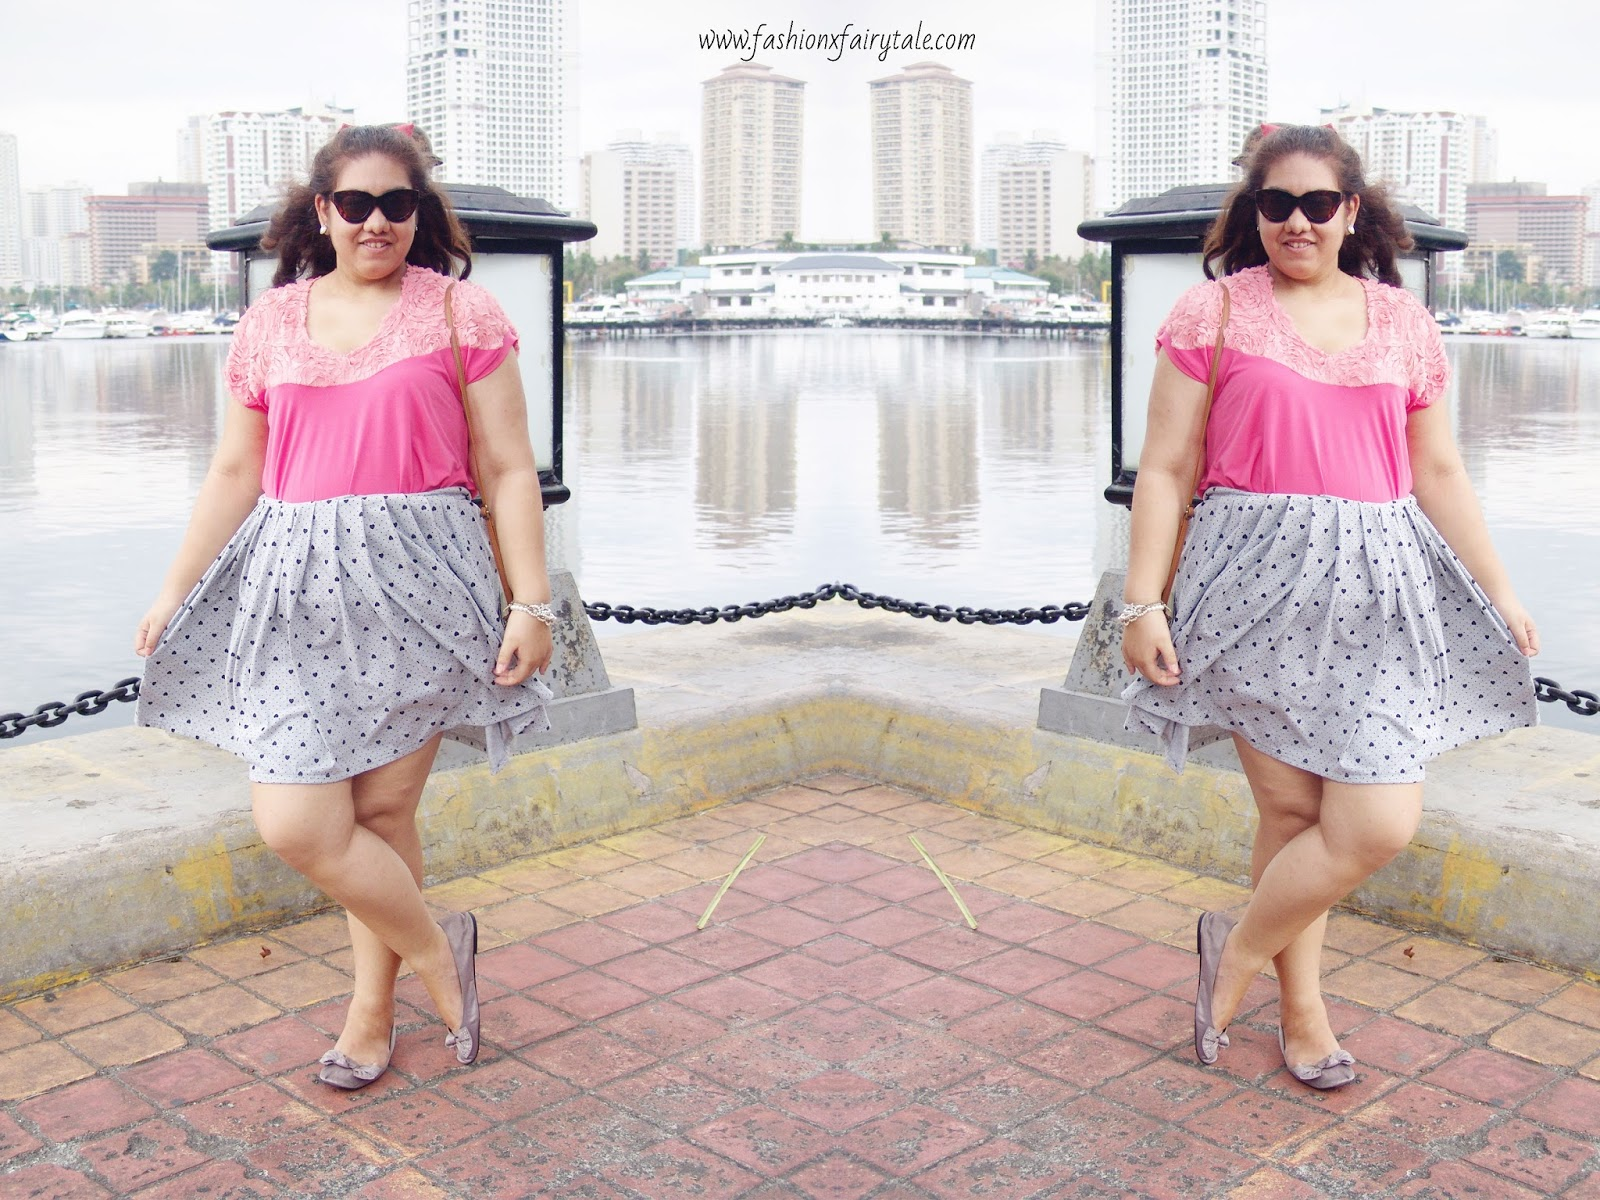 Bay Side Stroll | What I Wore